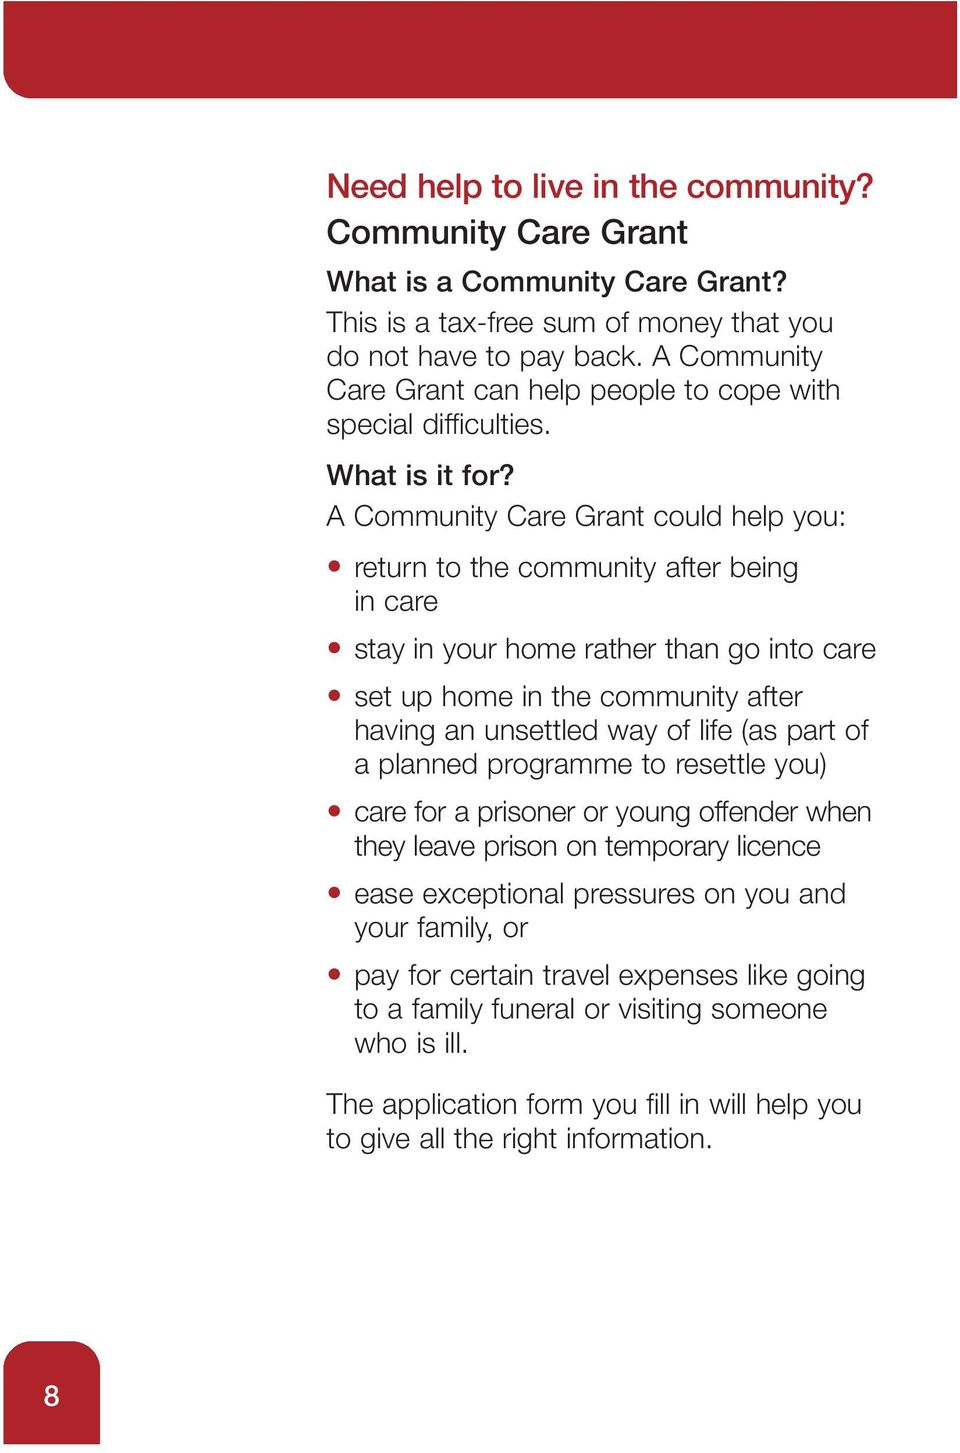 A Community Care Grant could help you: return to the community after being in care stay in your home rather than go into care set up home in the community after having an unsettled way of life (as